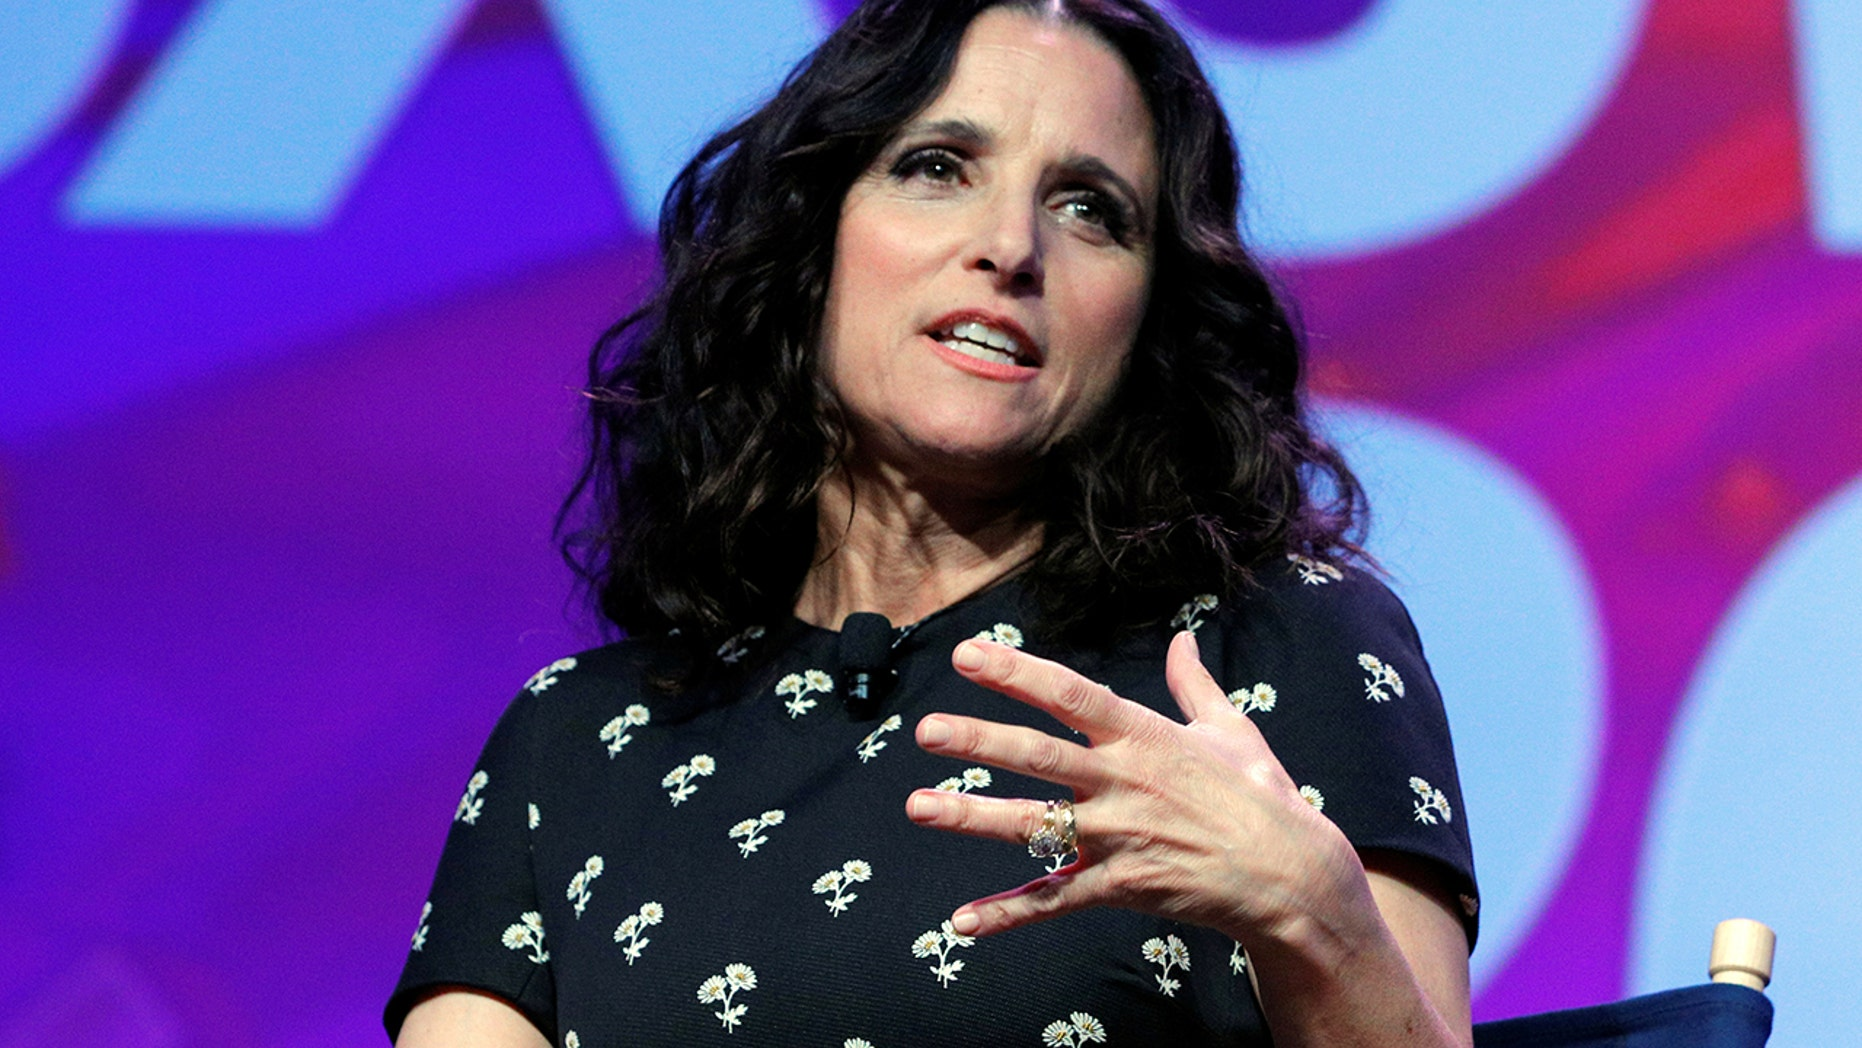 Julia Louis-Dreyfus opens up about breast cancer, says she's feeling strong